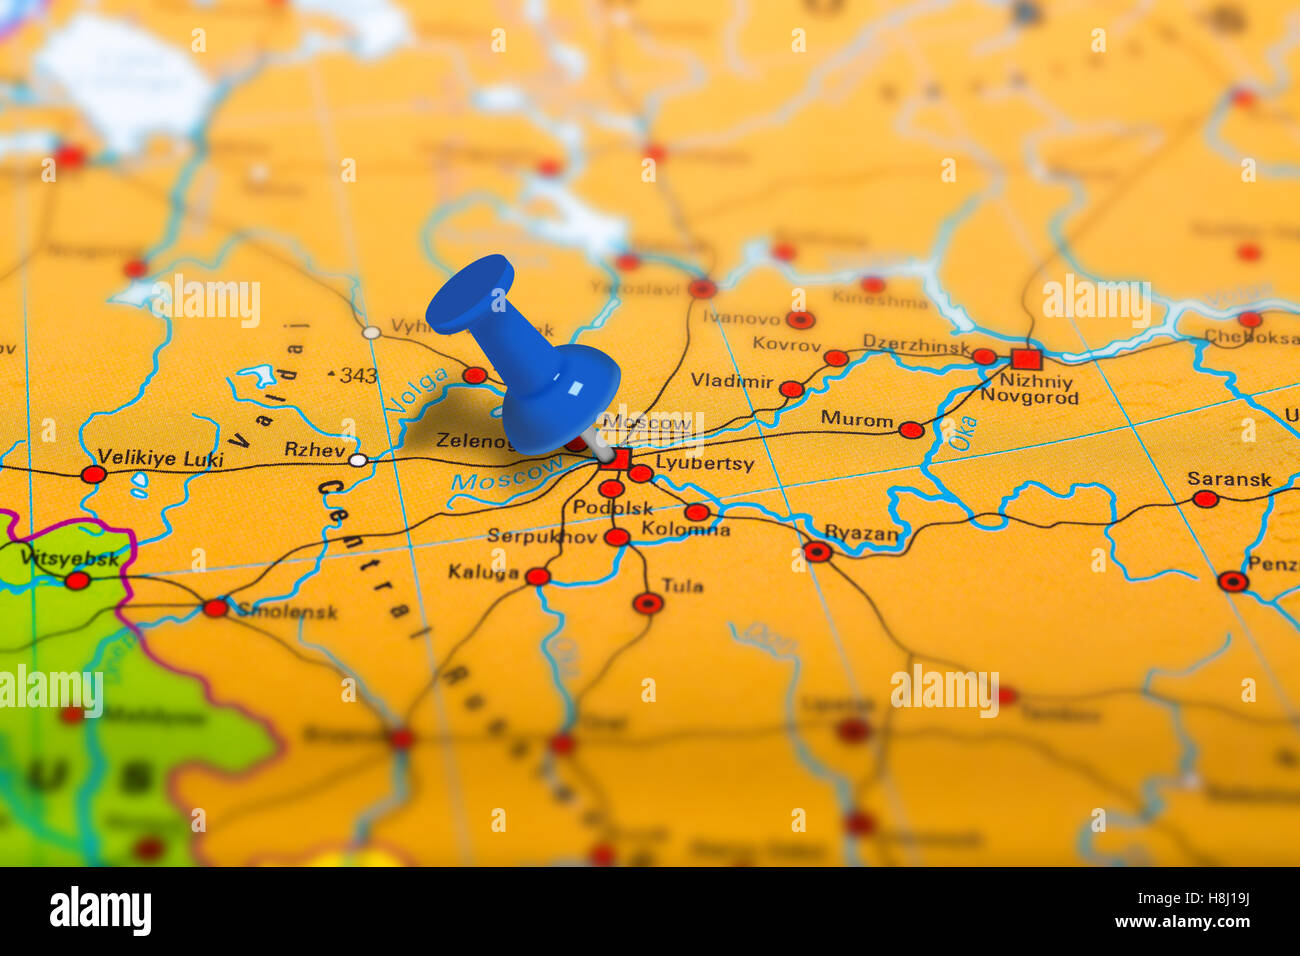 Moscow Russia Map Stock Photo 125786014 Alamy